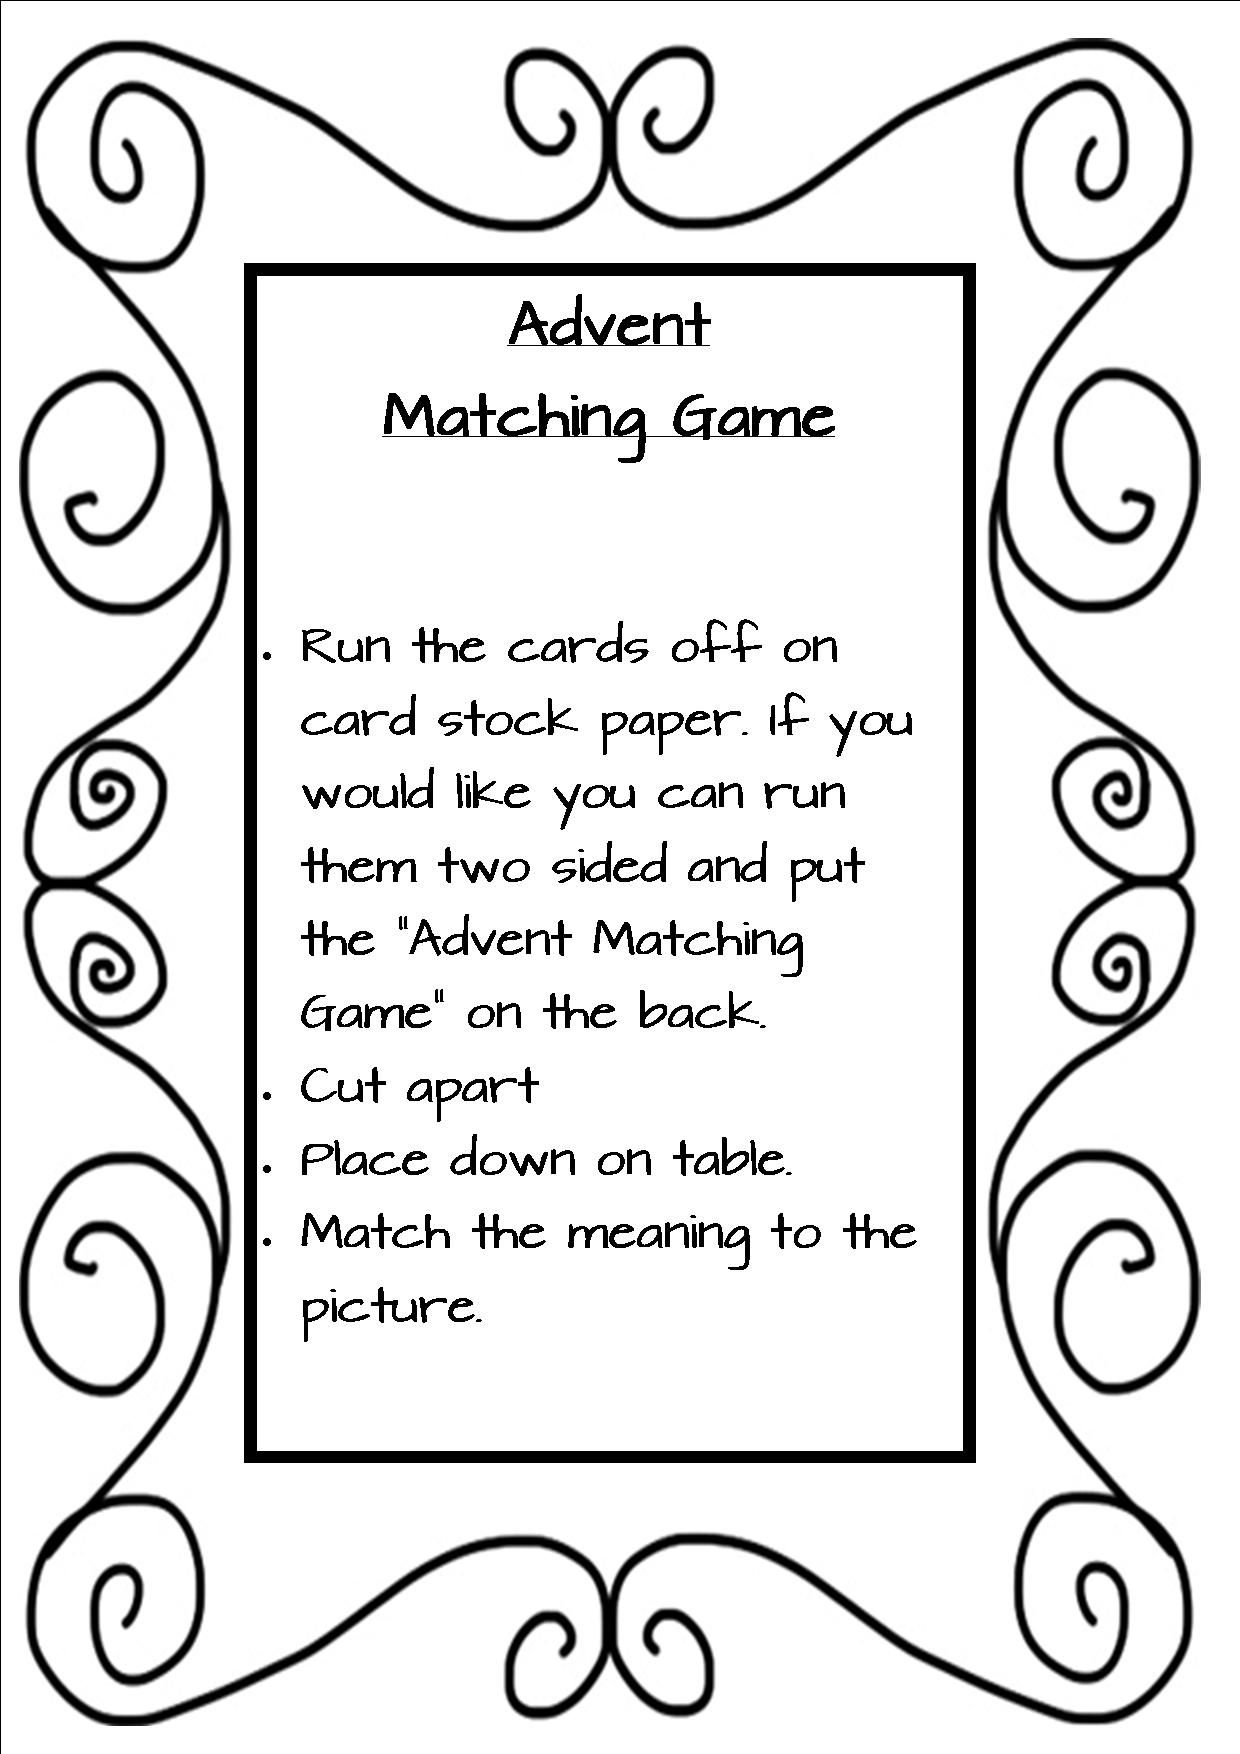 Advent Matching Game Catholic Pinterest Pinterest Advent